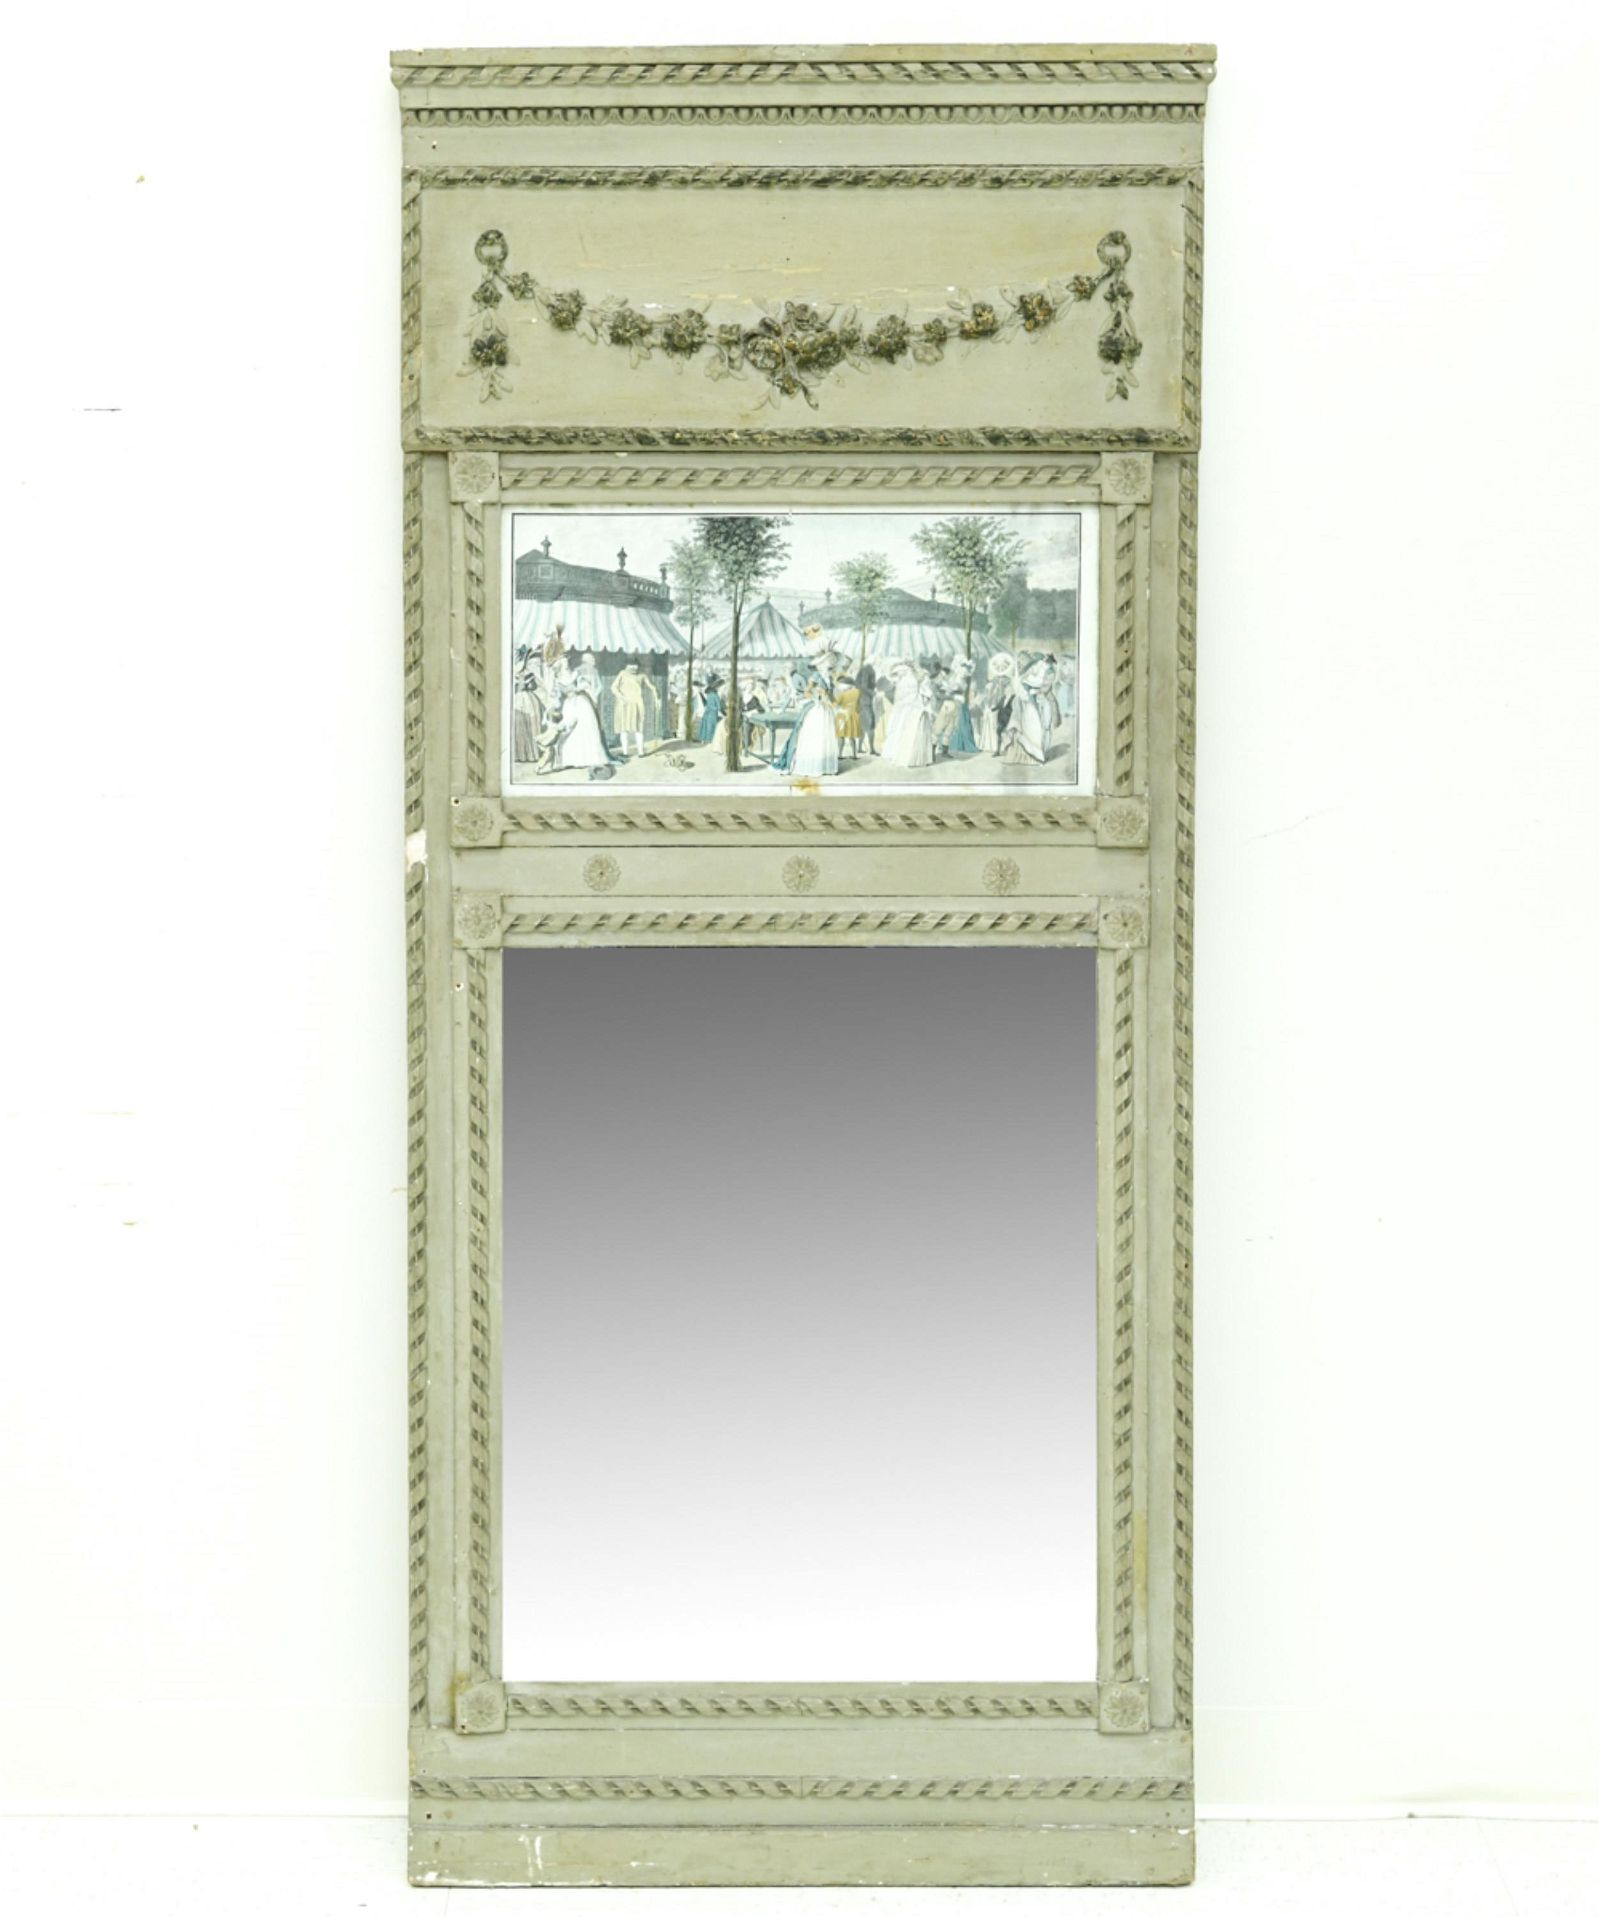 ANTIQUE FRENCH STYLE TRUMEAU MIRROR